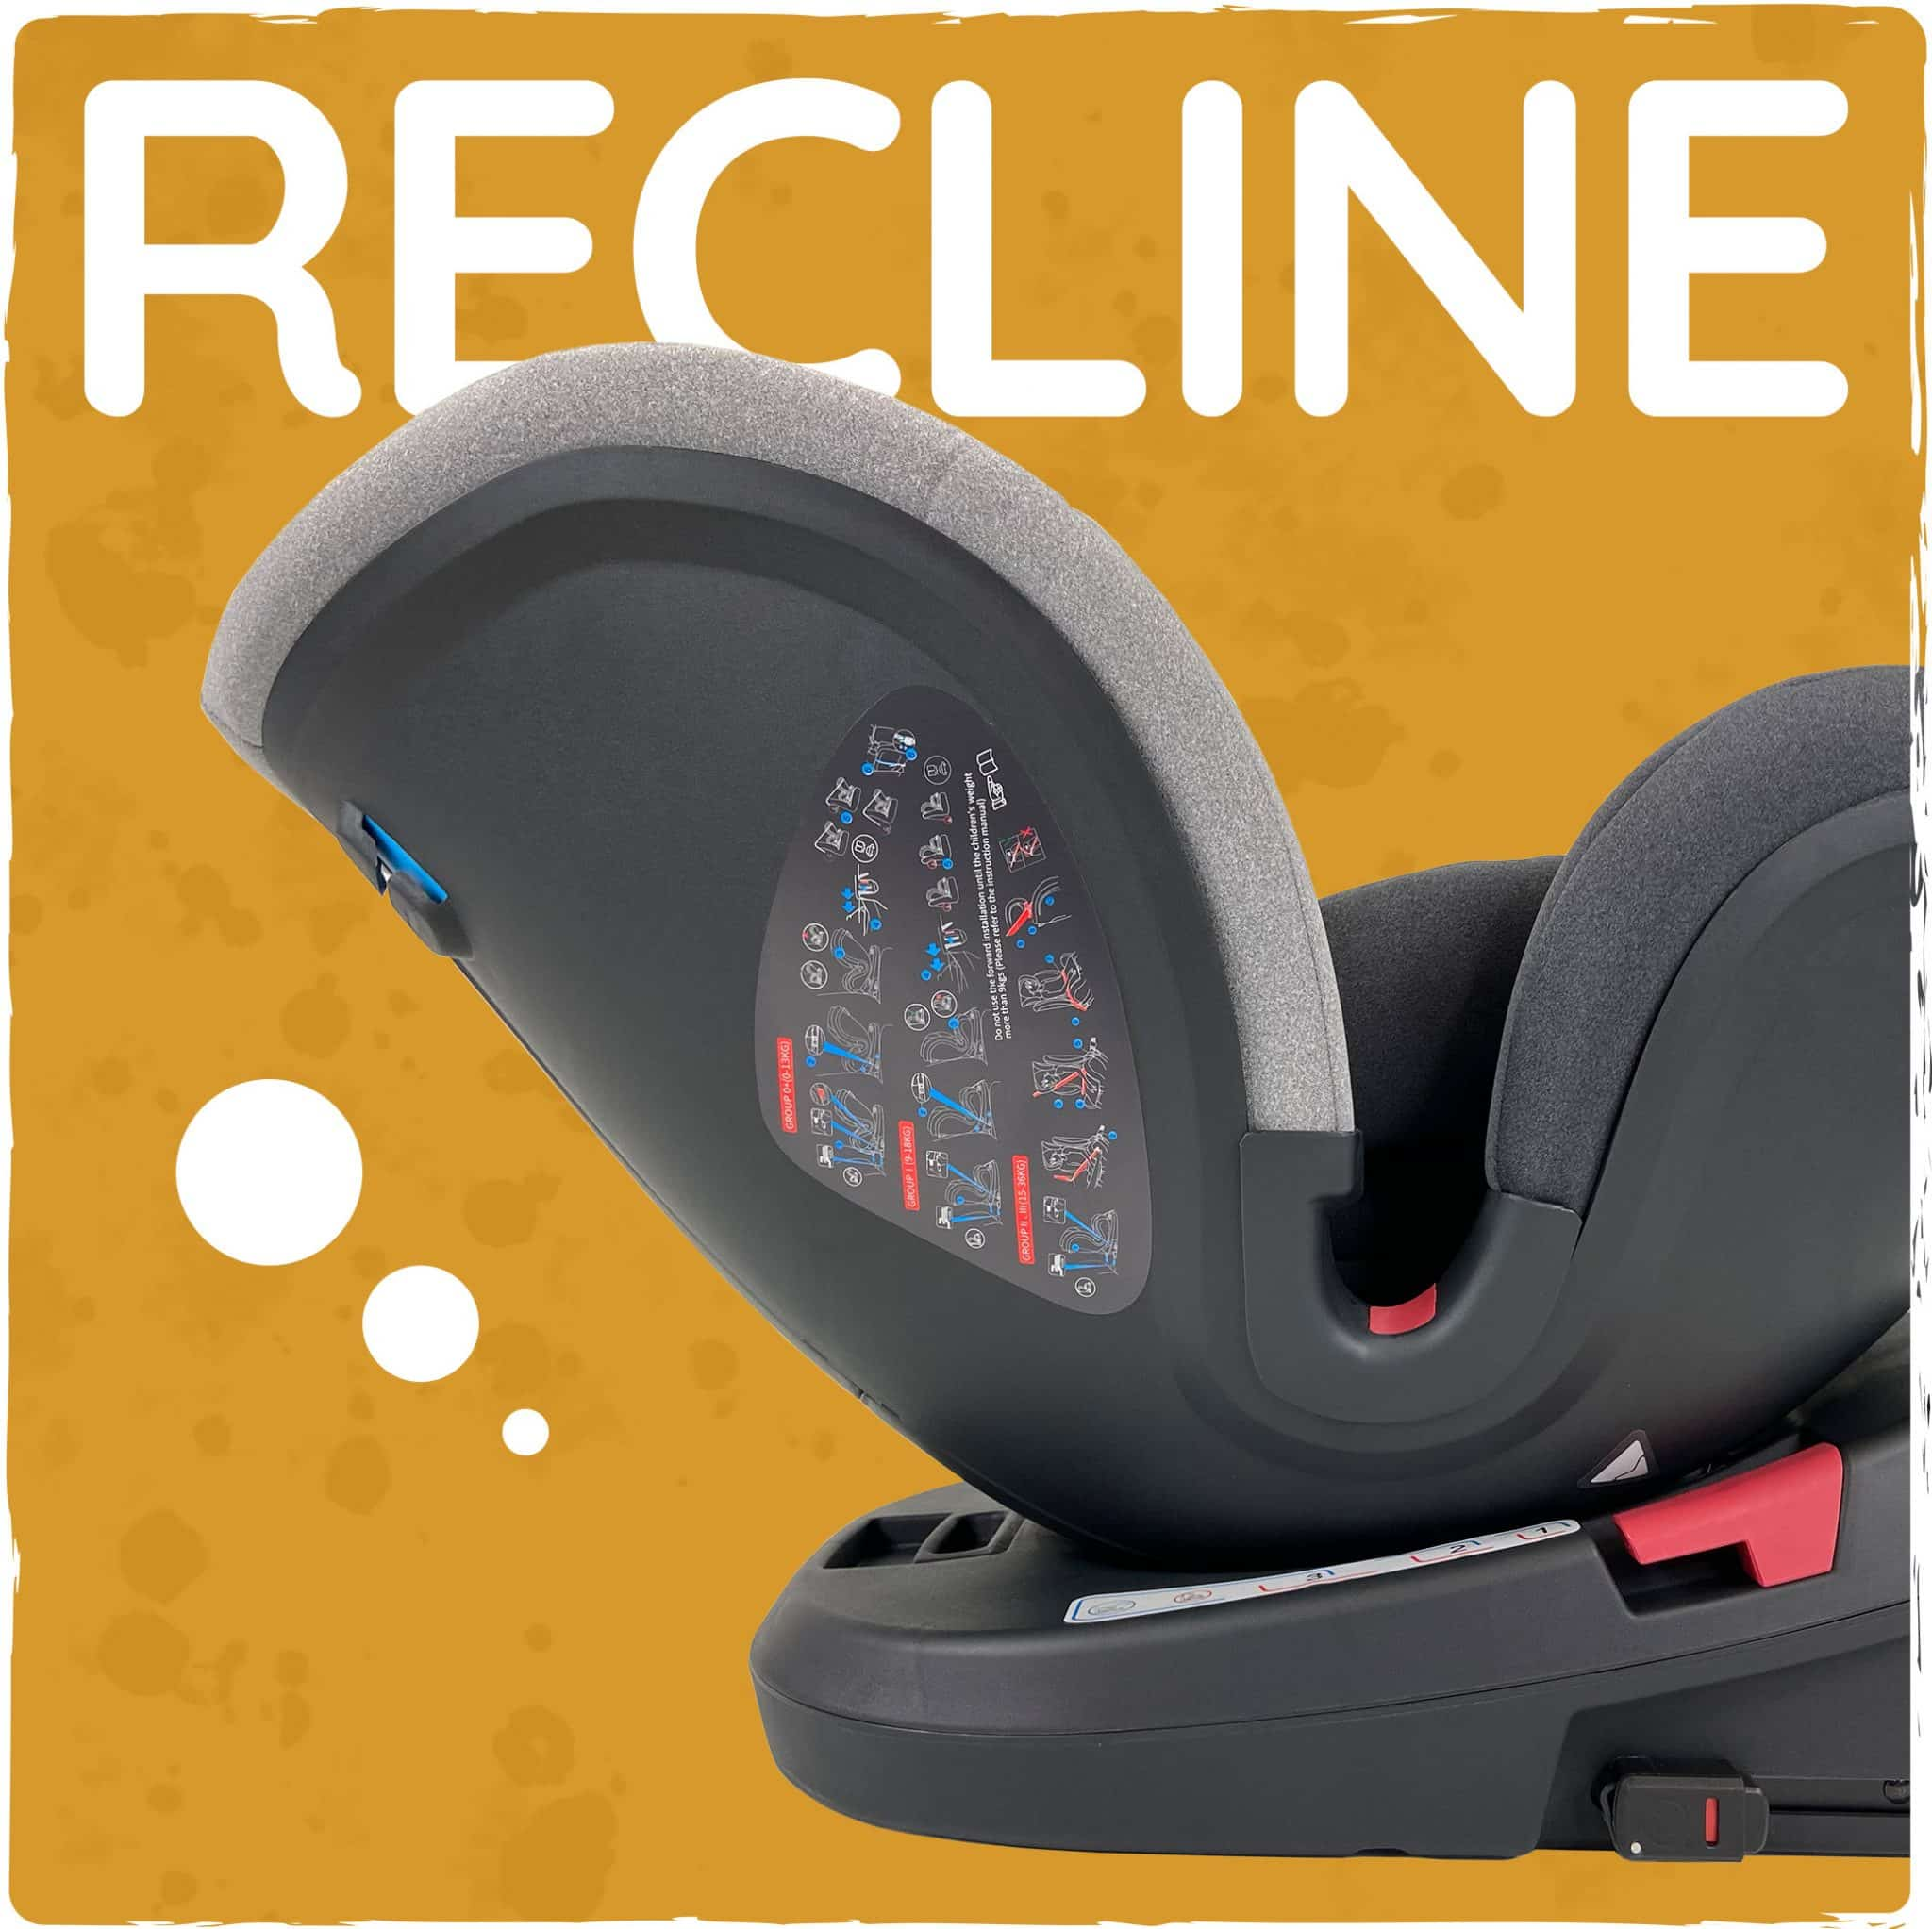 3 position recline both front and rear facing